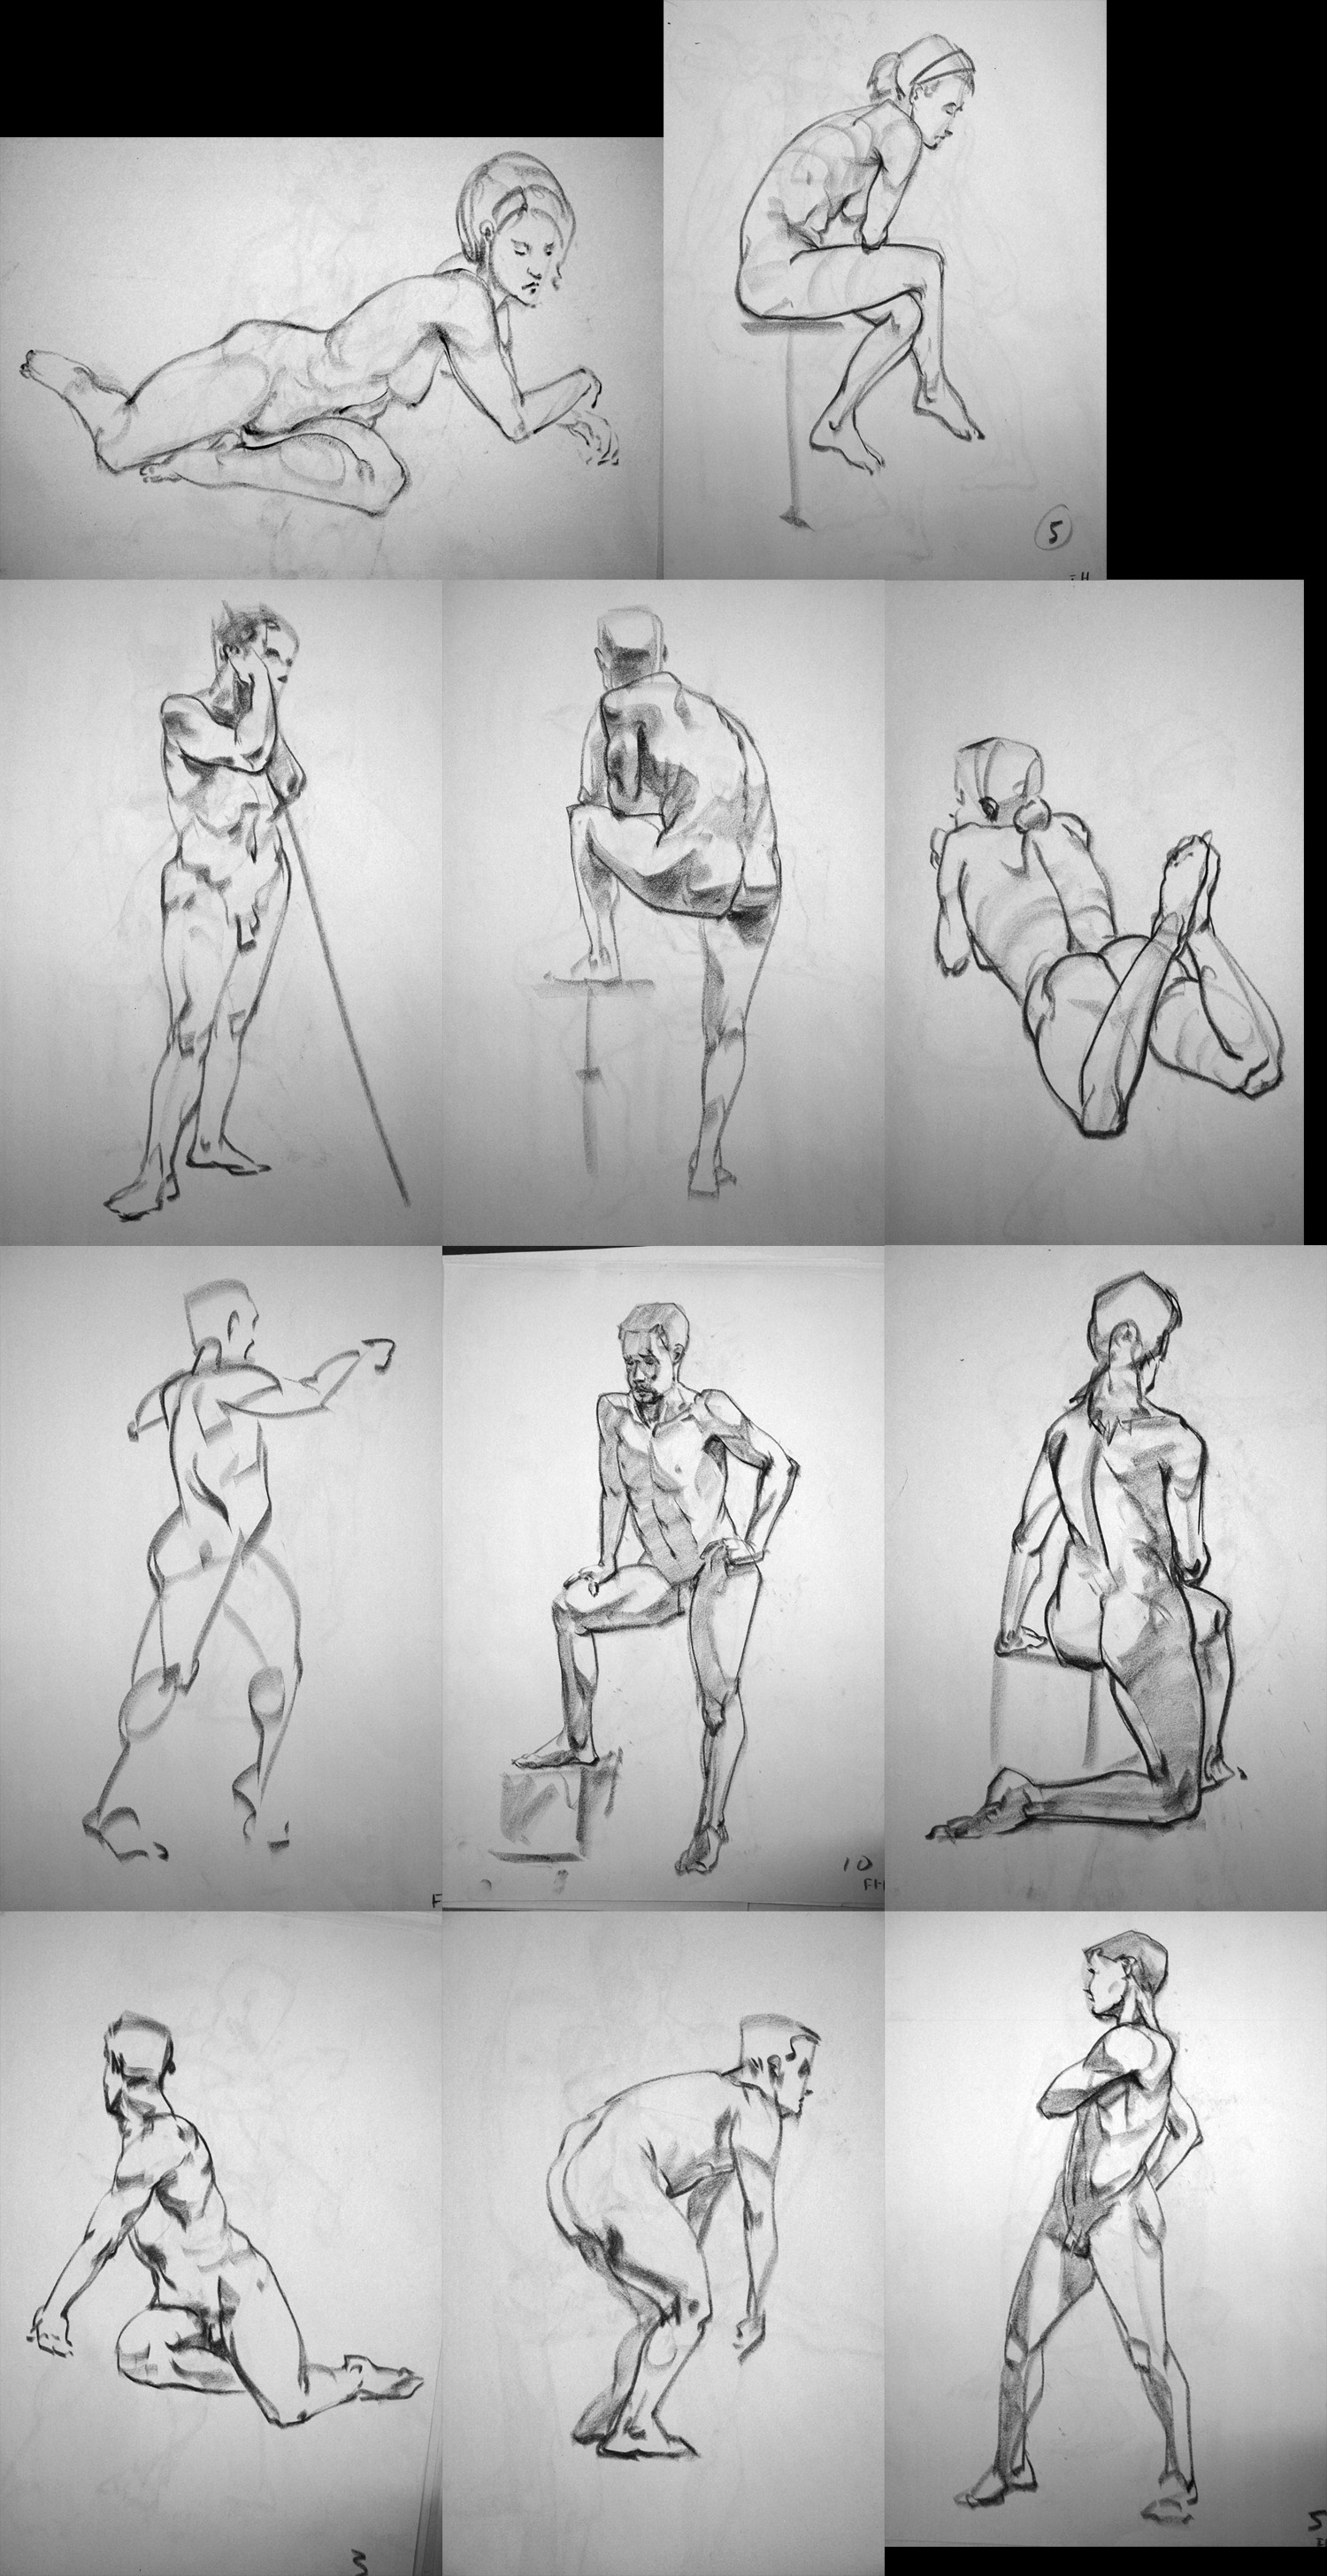 LifeDrawings 1 by frankhong